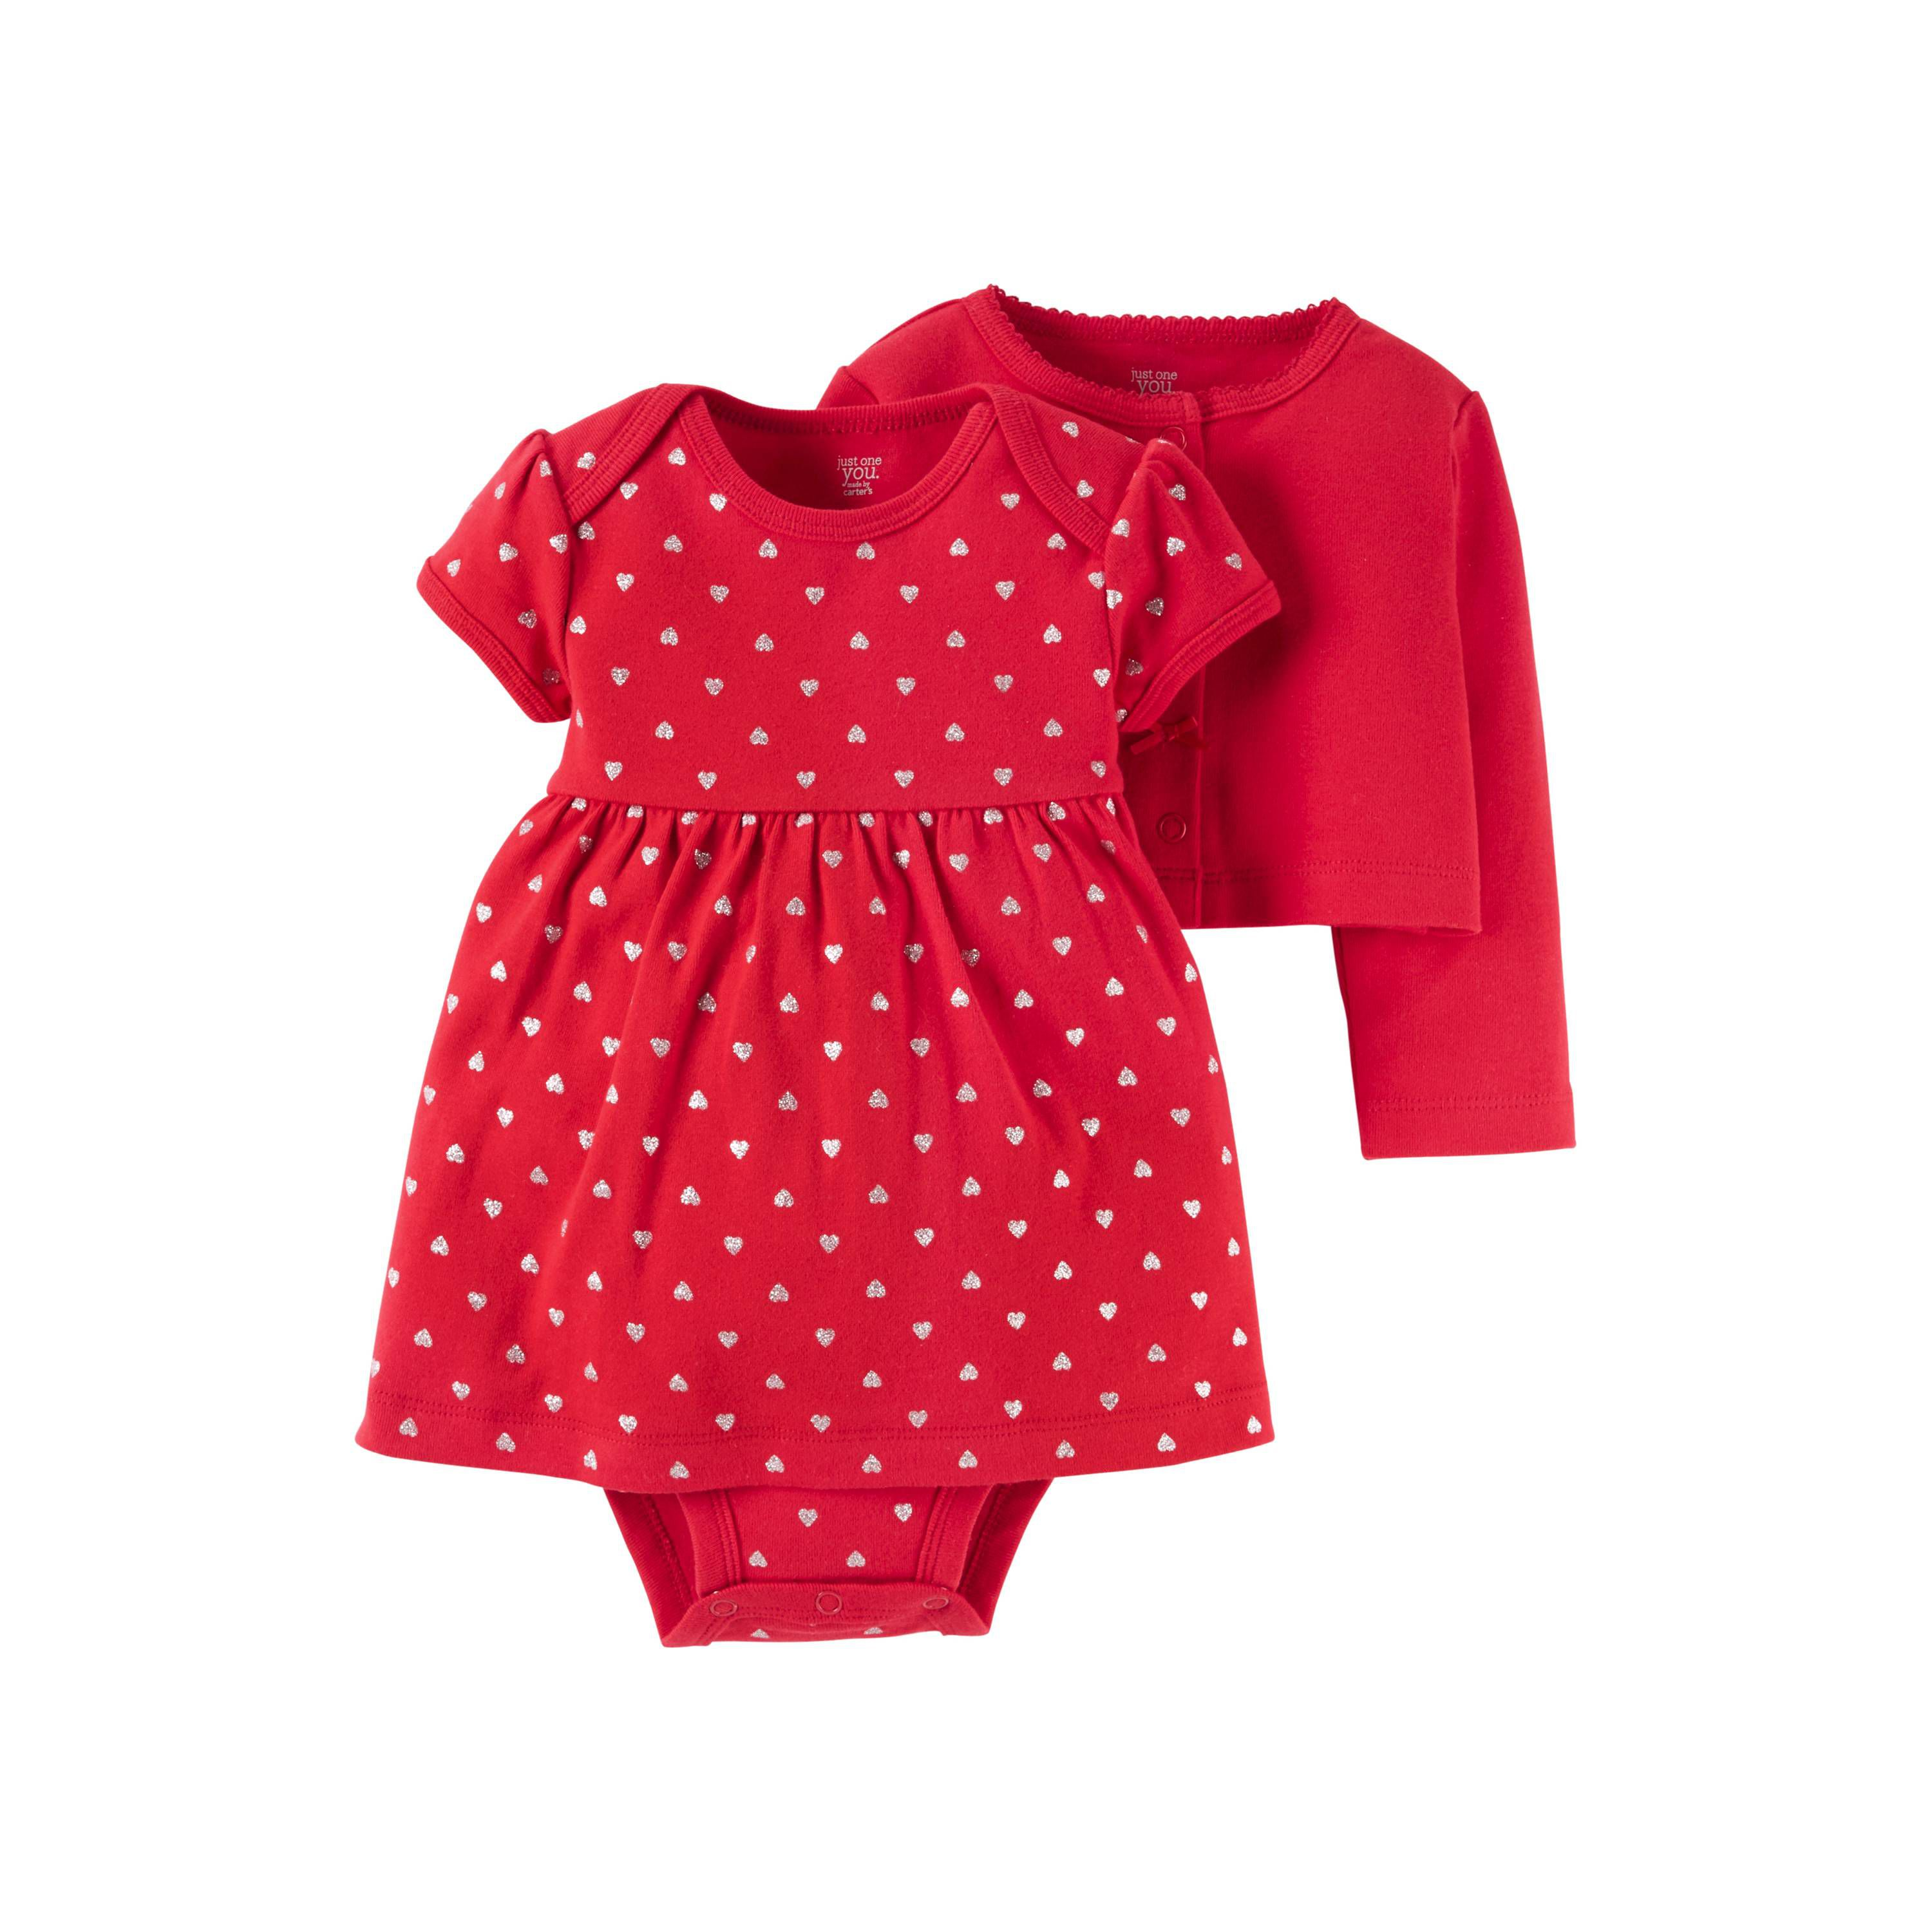 56b5748fa 20 Sweet Valentine s Day Outfits for Babies